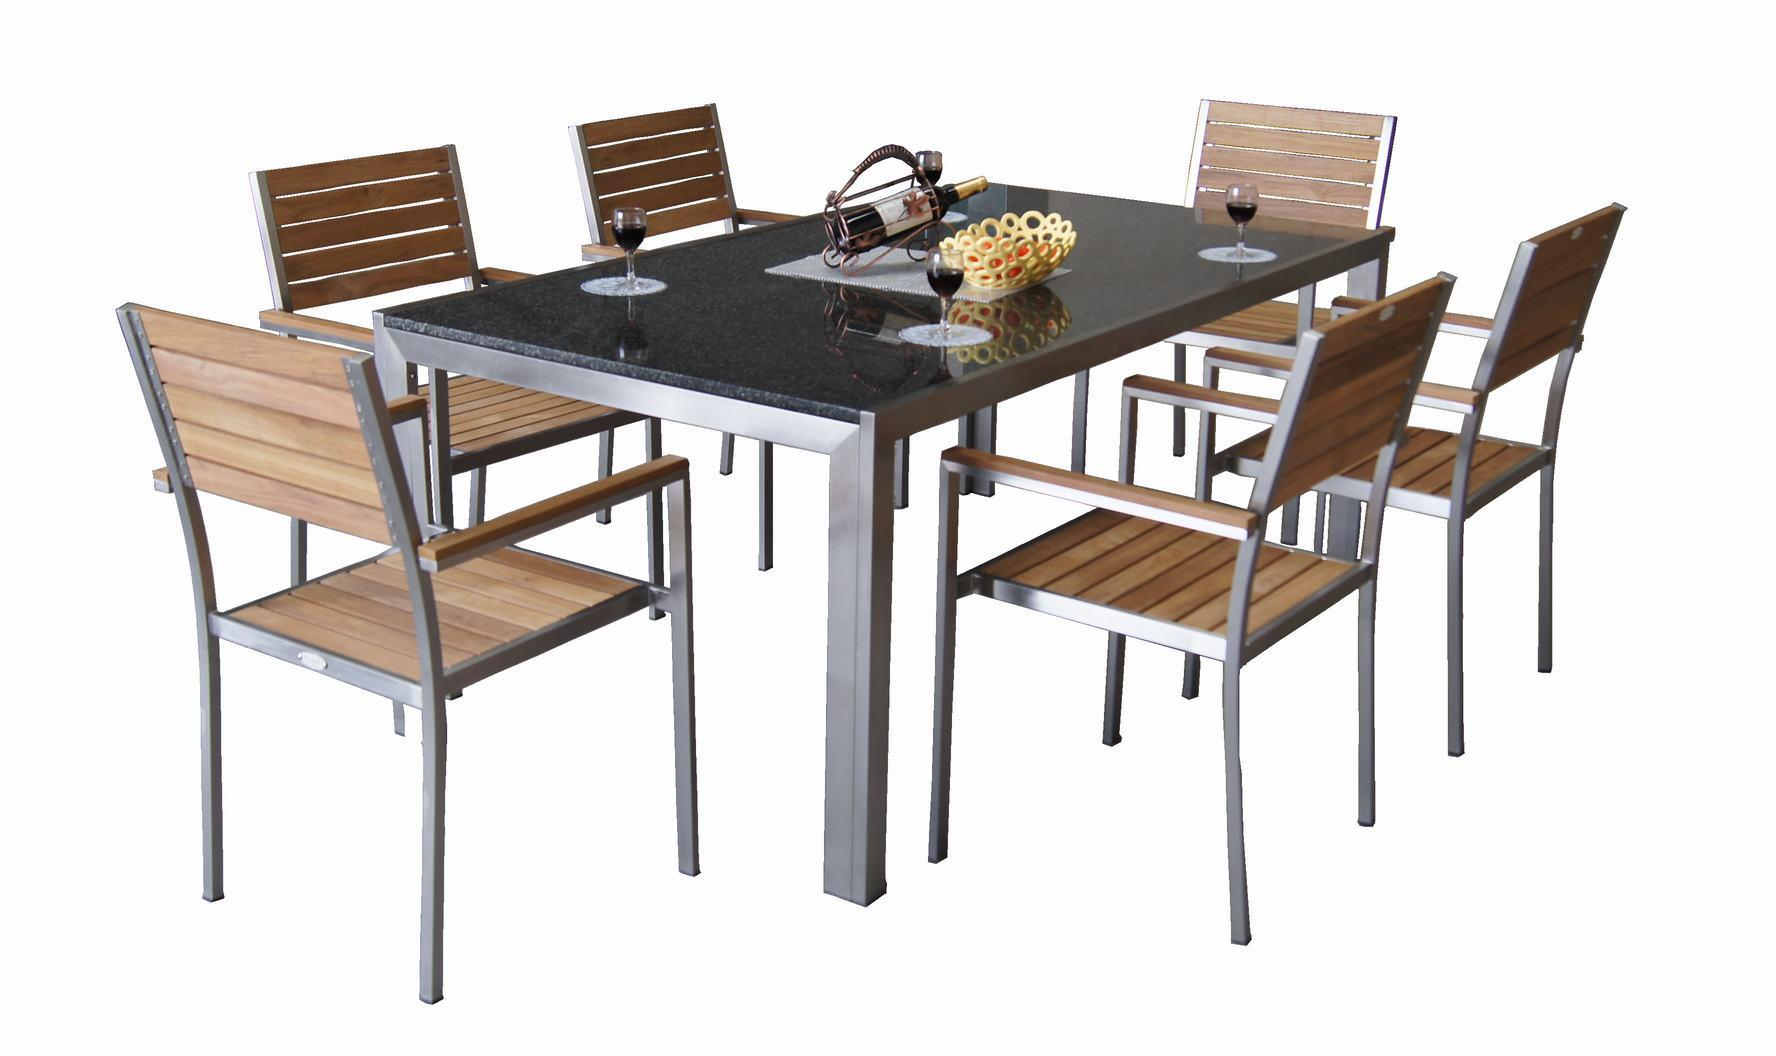 China Outdoor Granite and Stainless Steel Garden Furniture